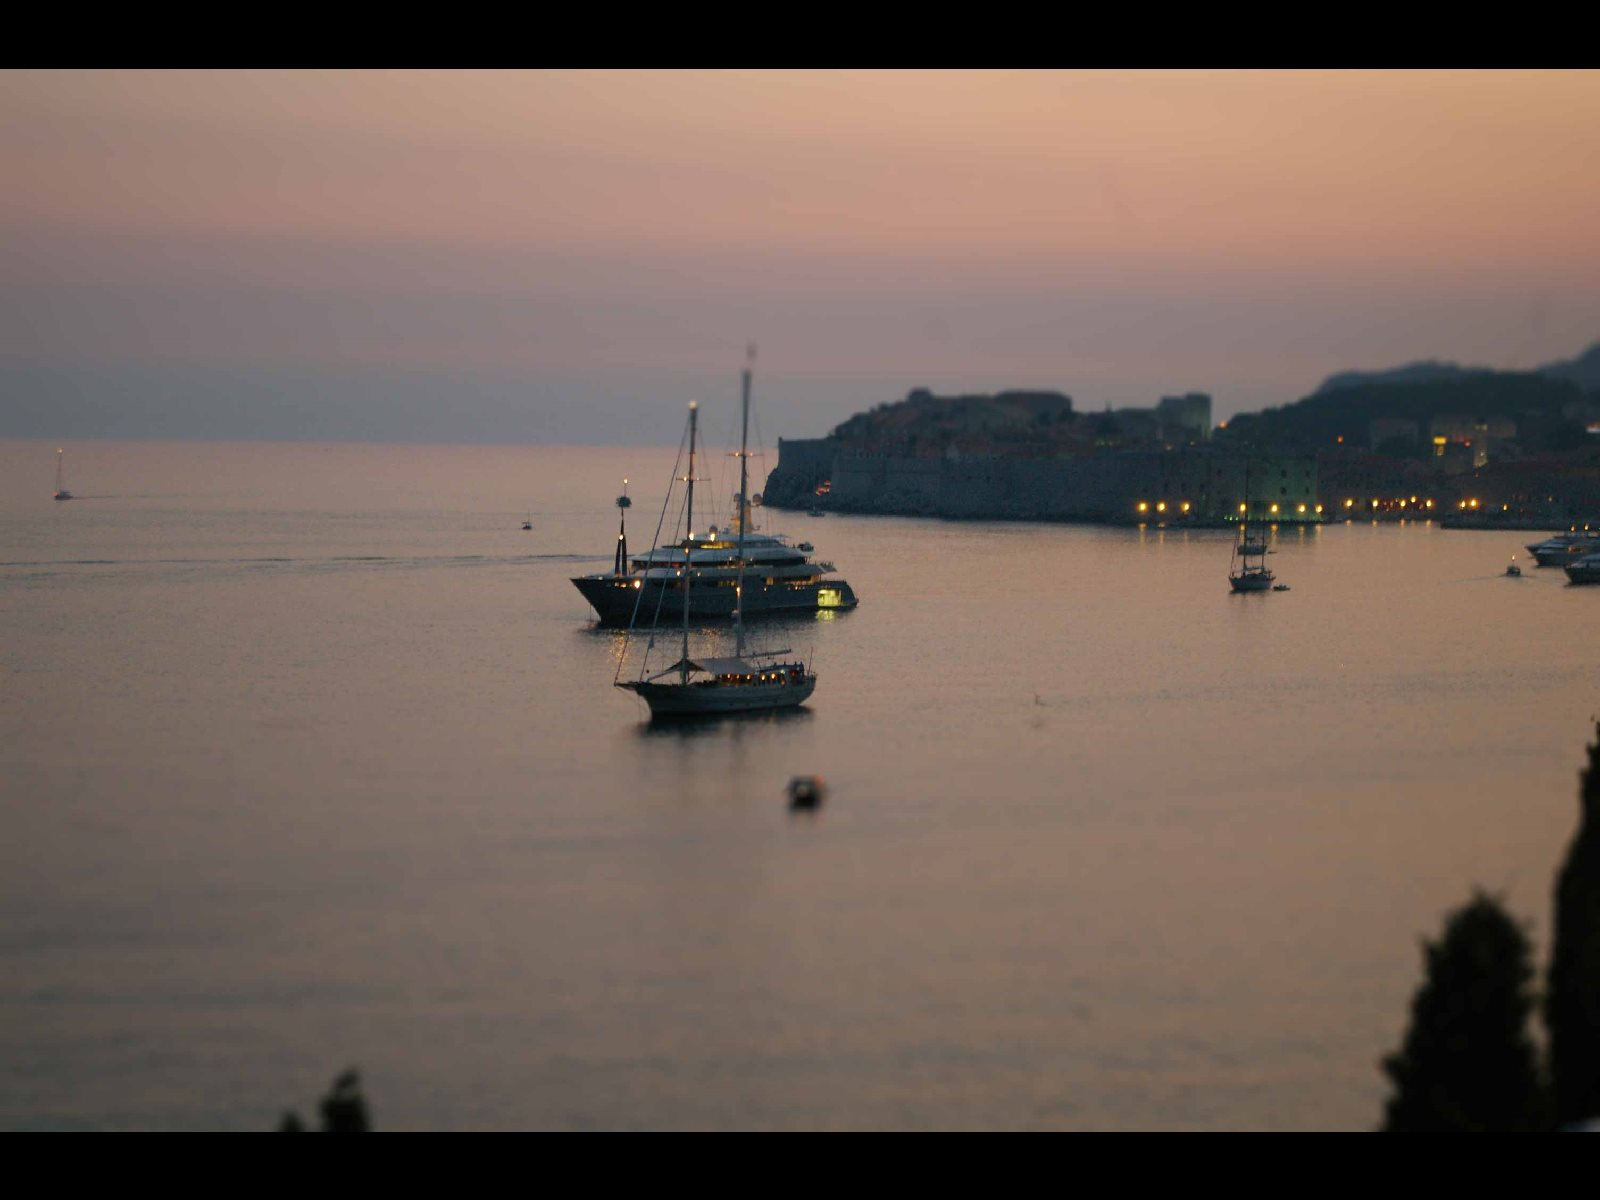 -images-excursions-sunset-panorama-dubrovnik-sunset-panorama-2.jpg